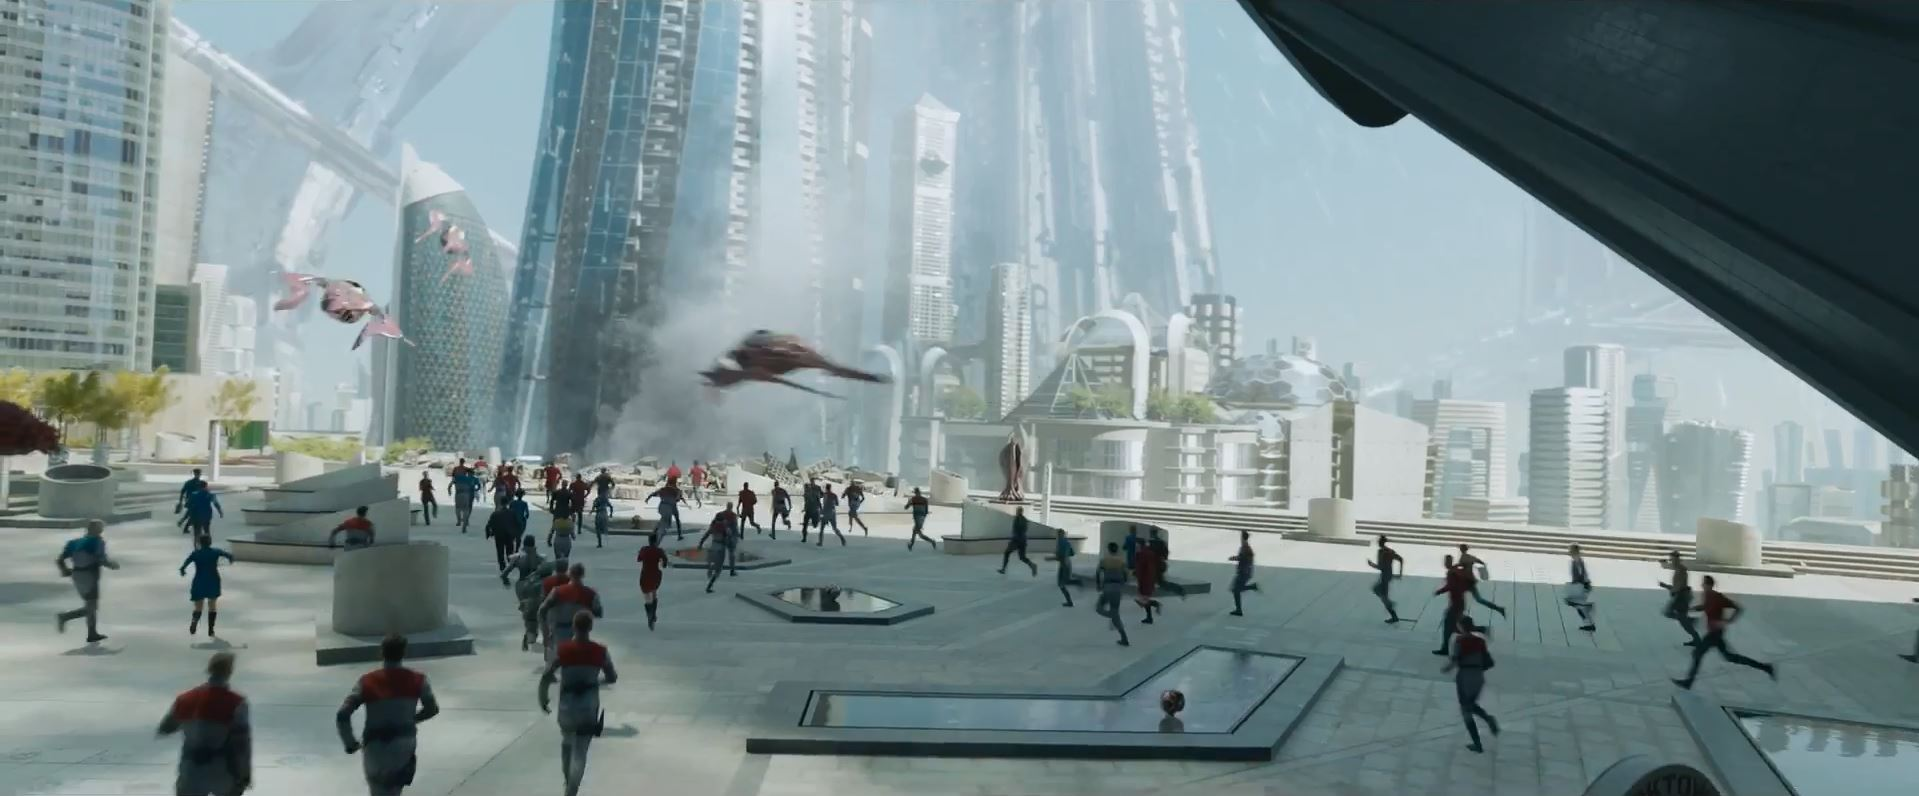 First trailer for Star Trek Beyond. Starfleet headquarters under attack